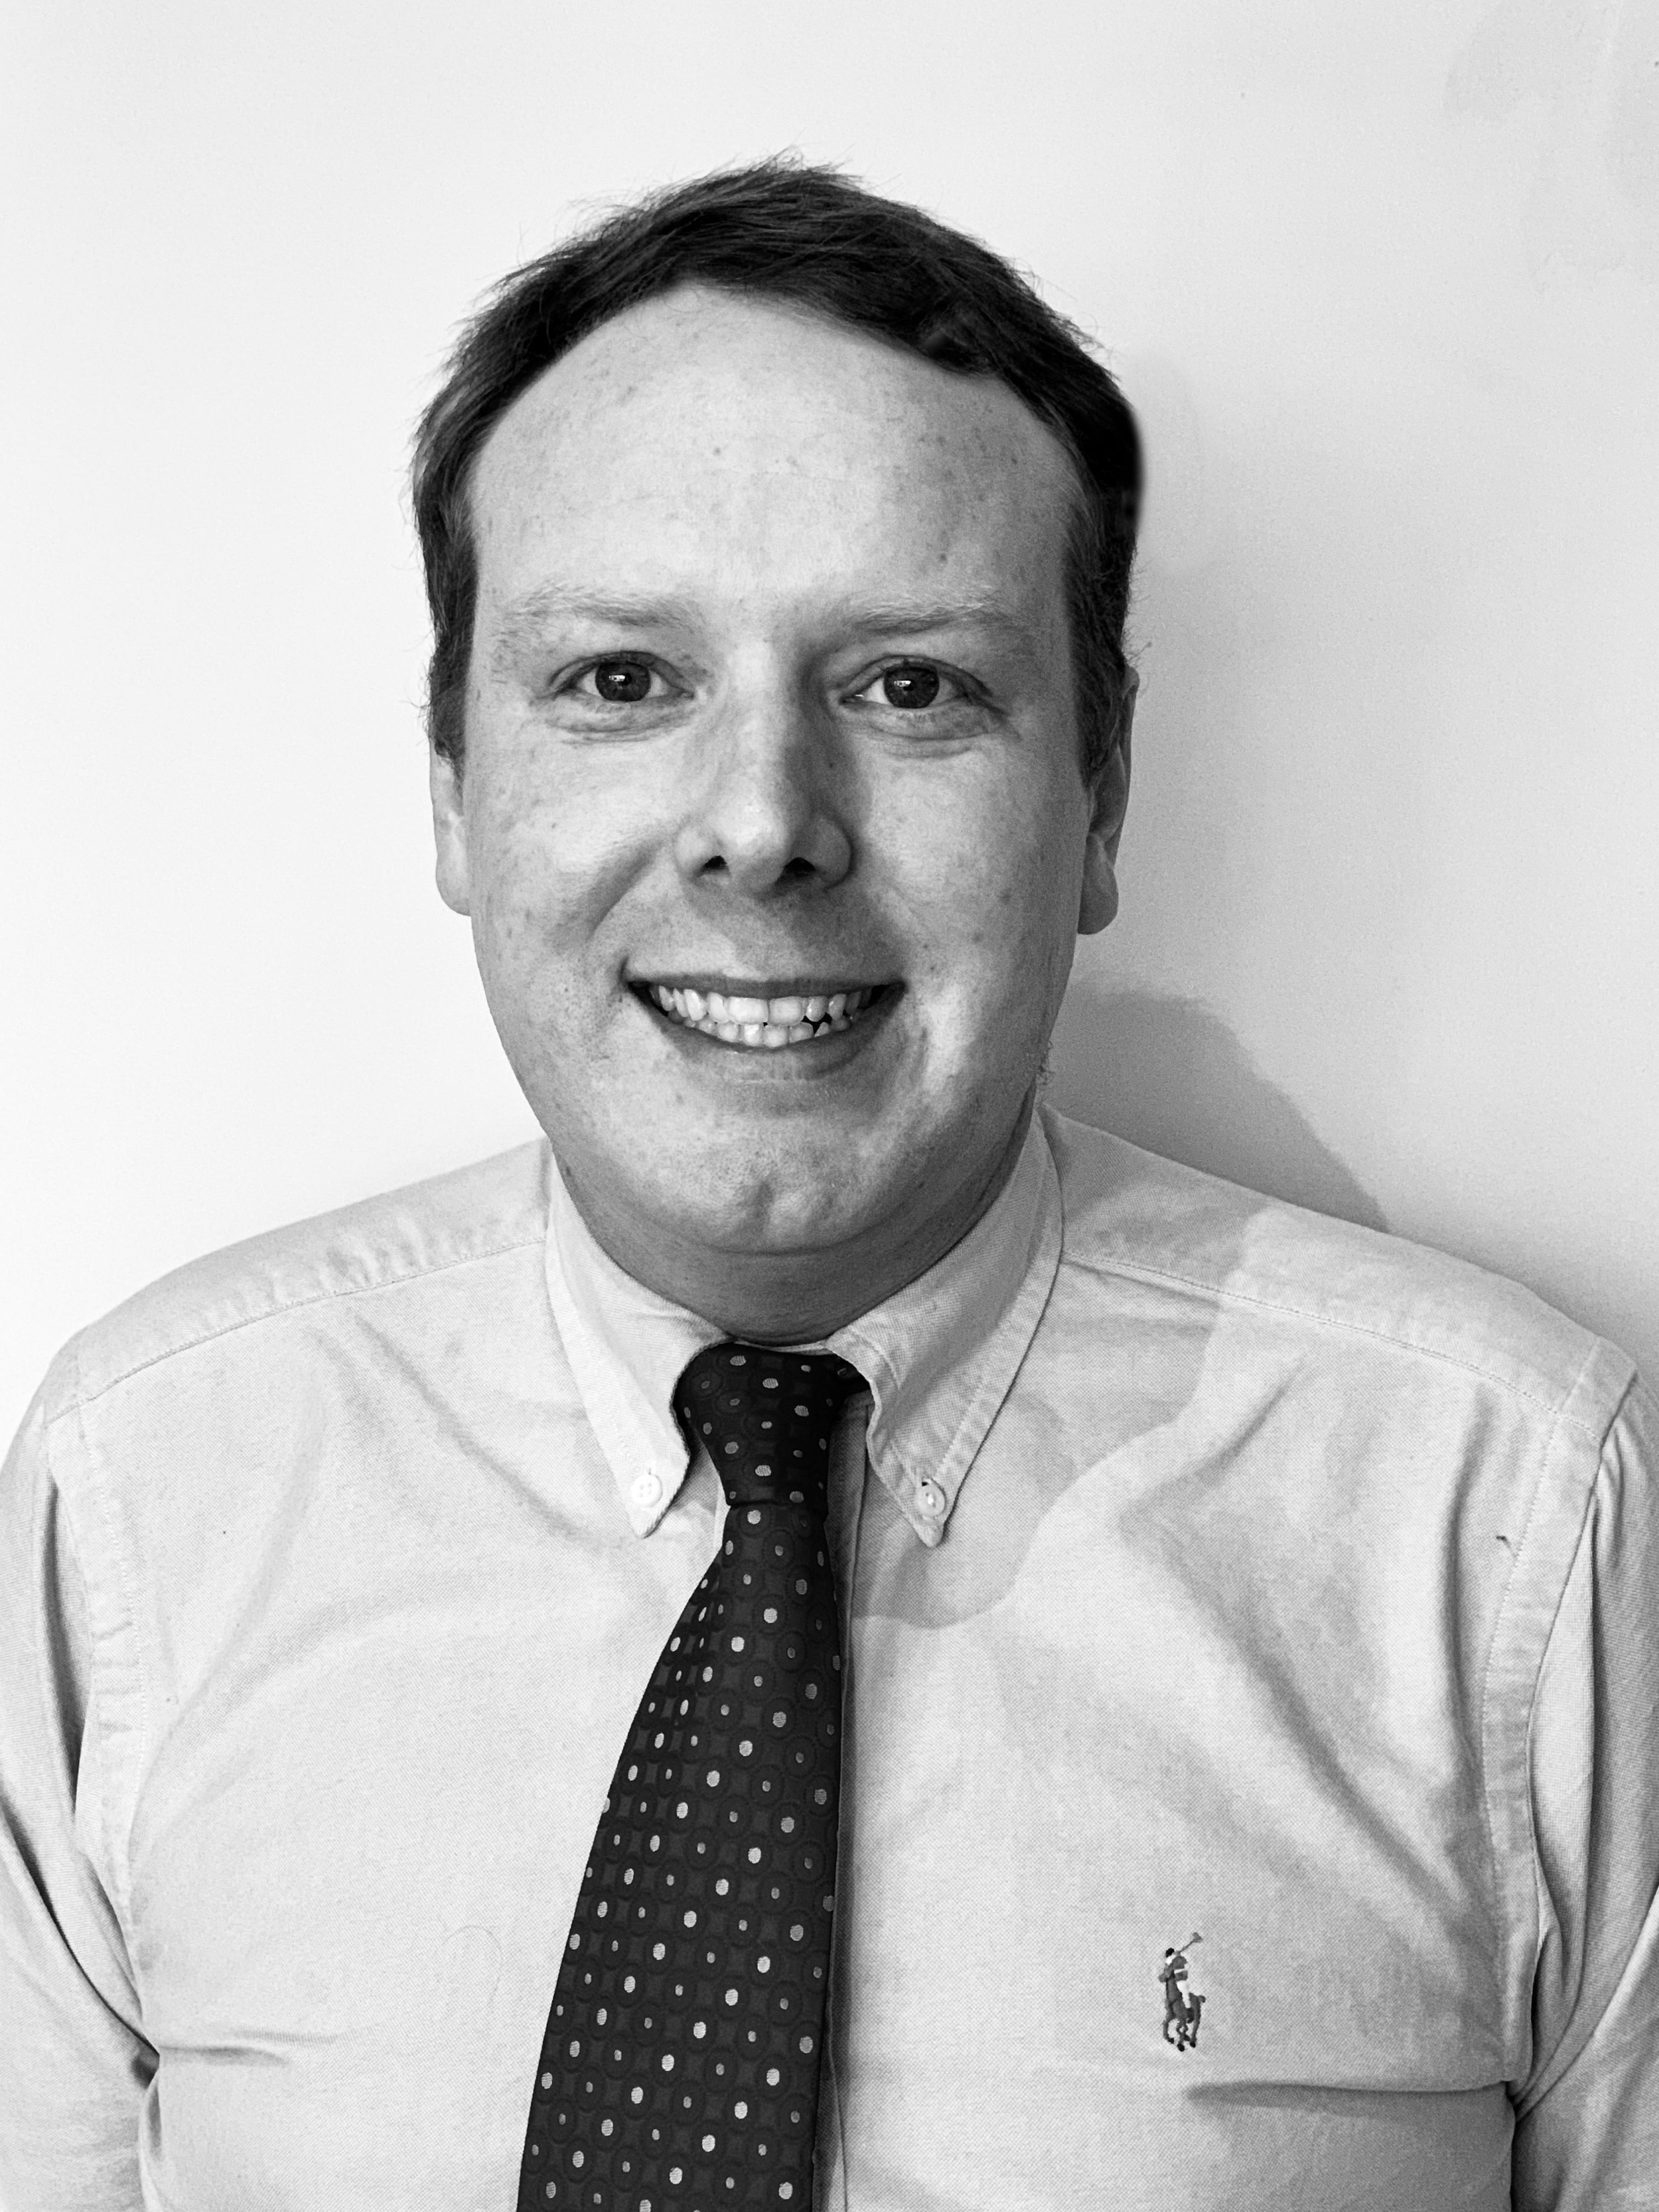 DAN REILLY - SENIOR NEGOTIATOR